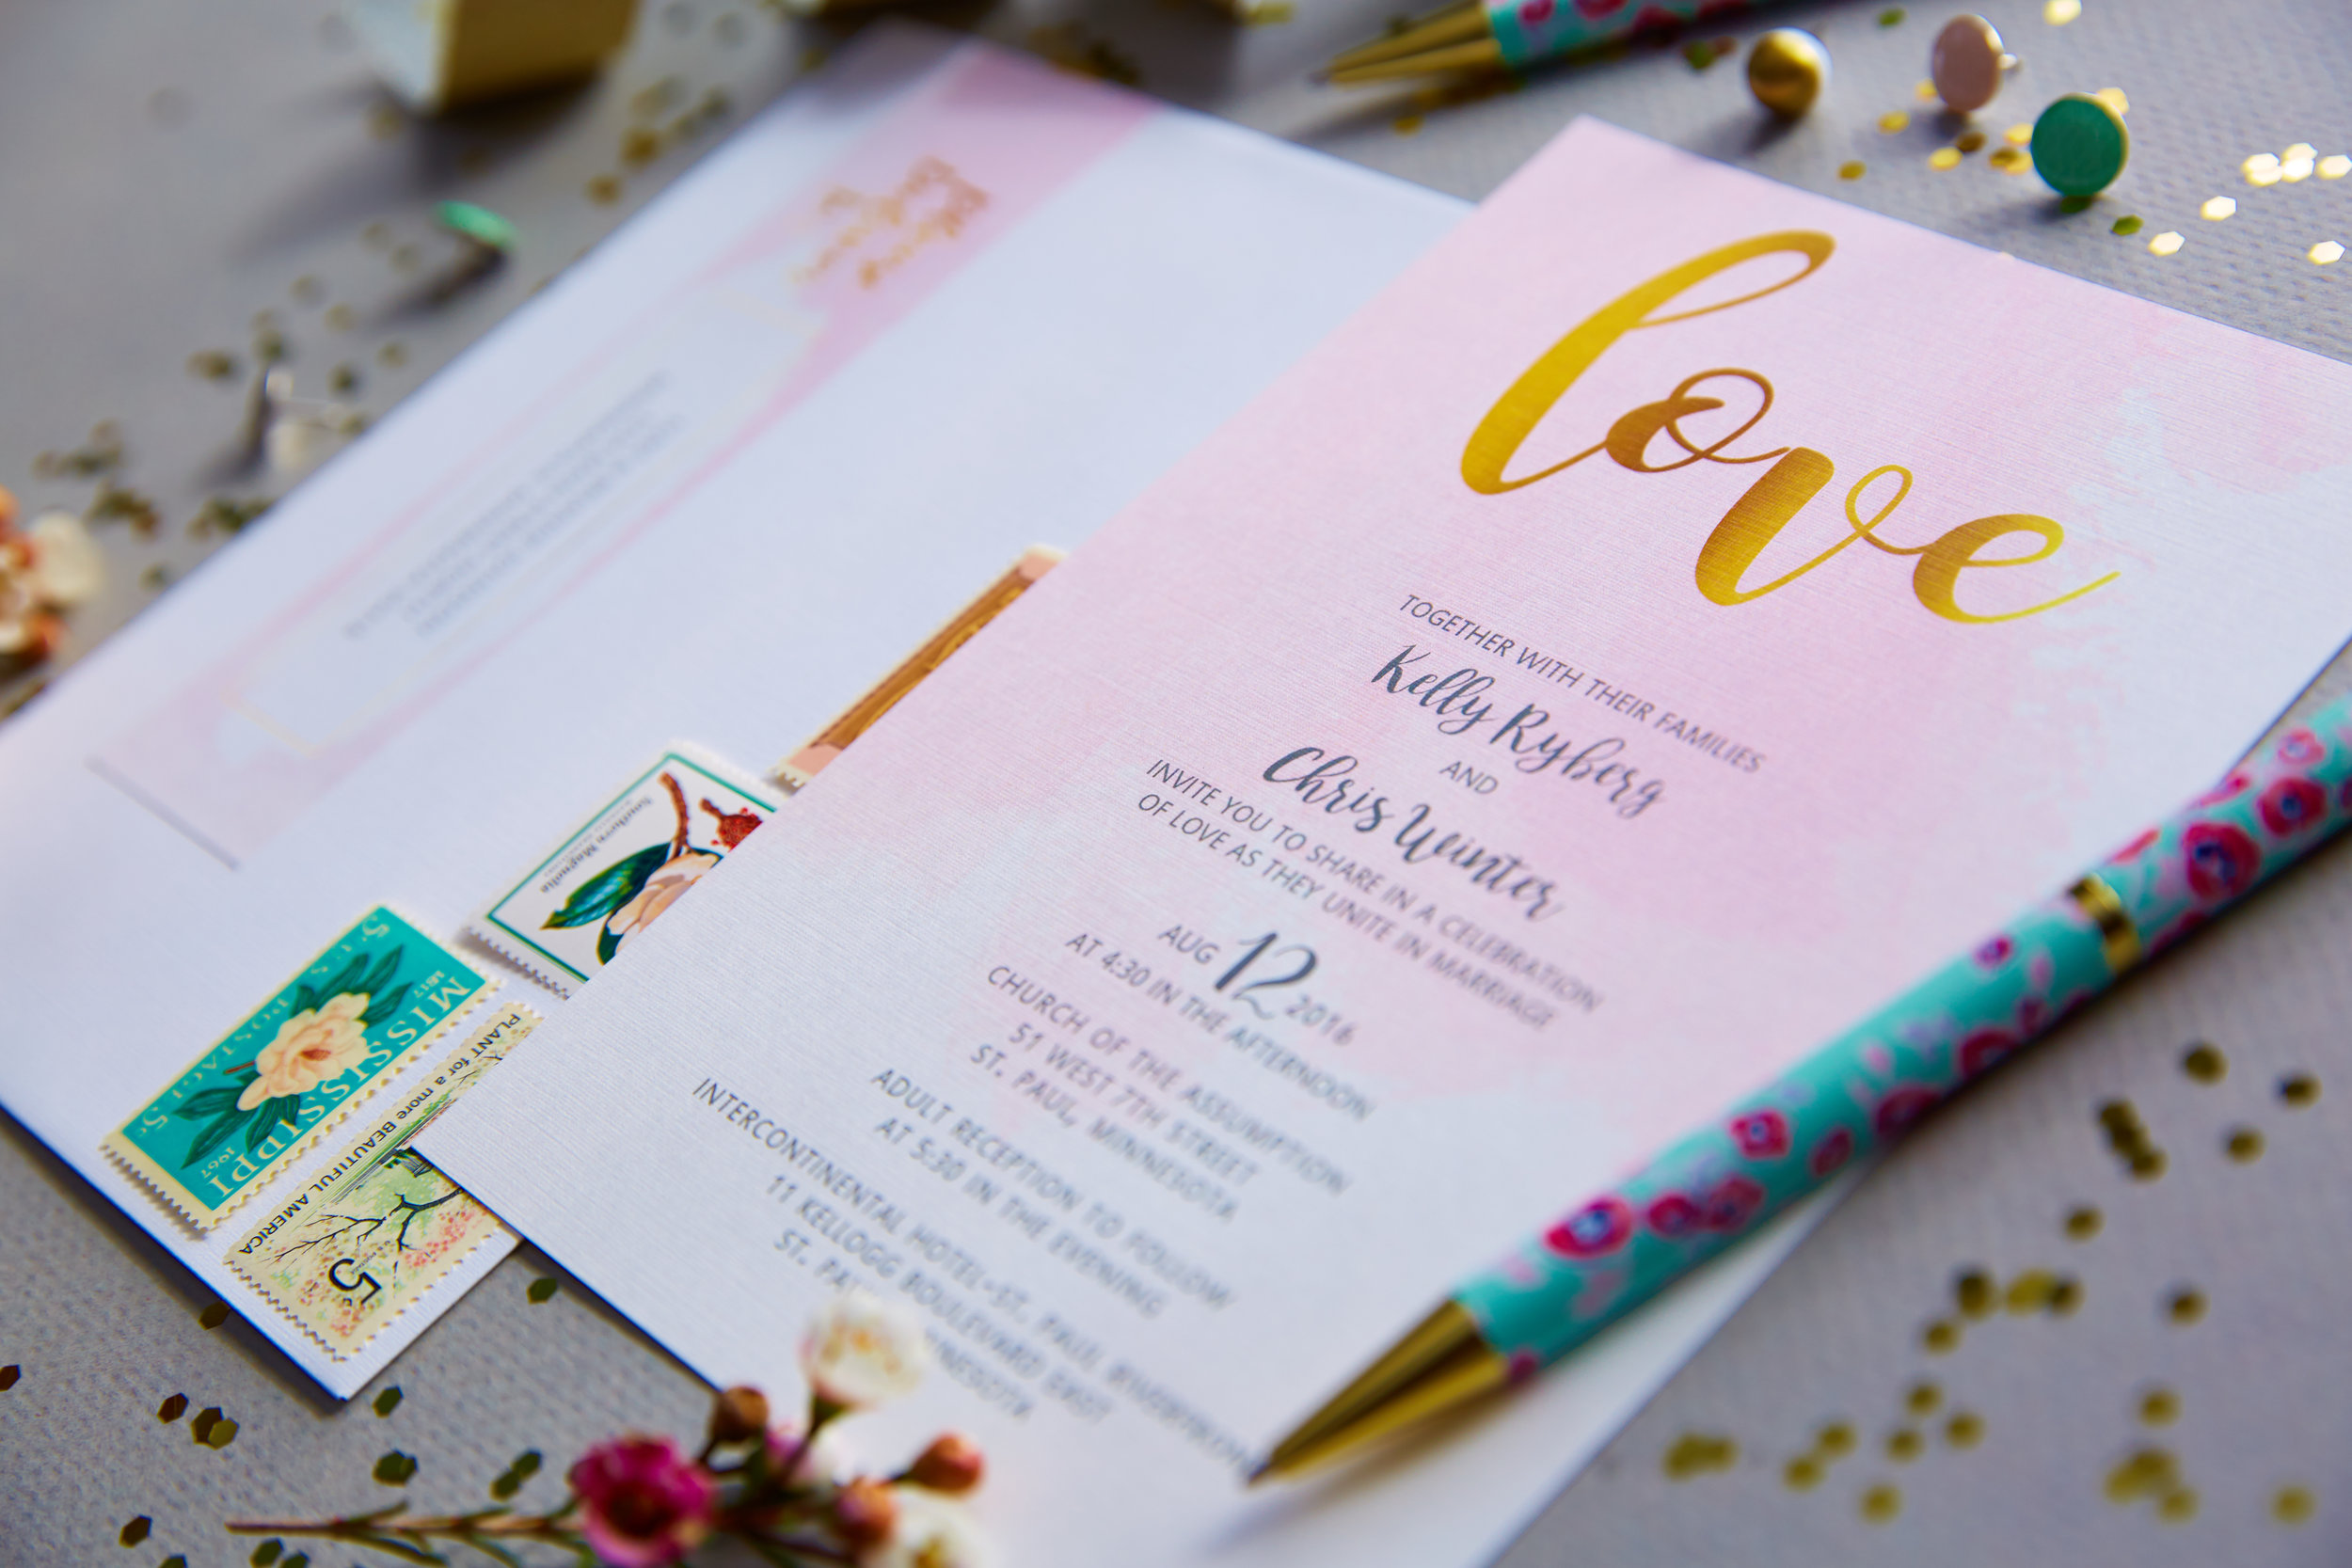 Kelly_watercolor_custom_wedding_invitation_huntwrightdesignco_014.jpg